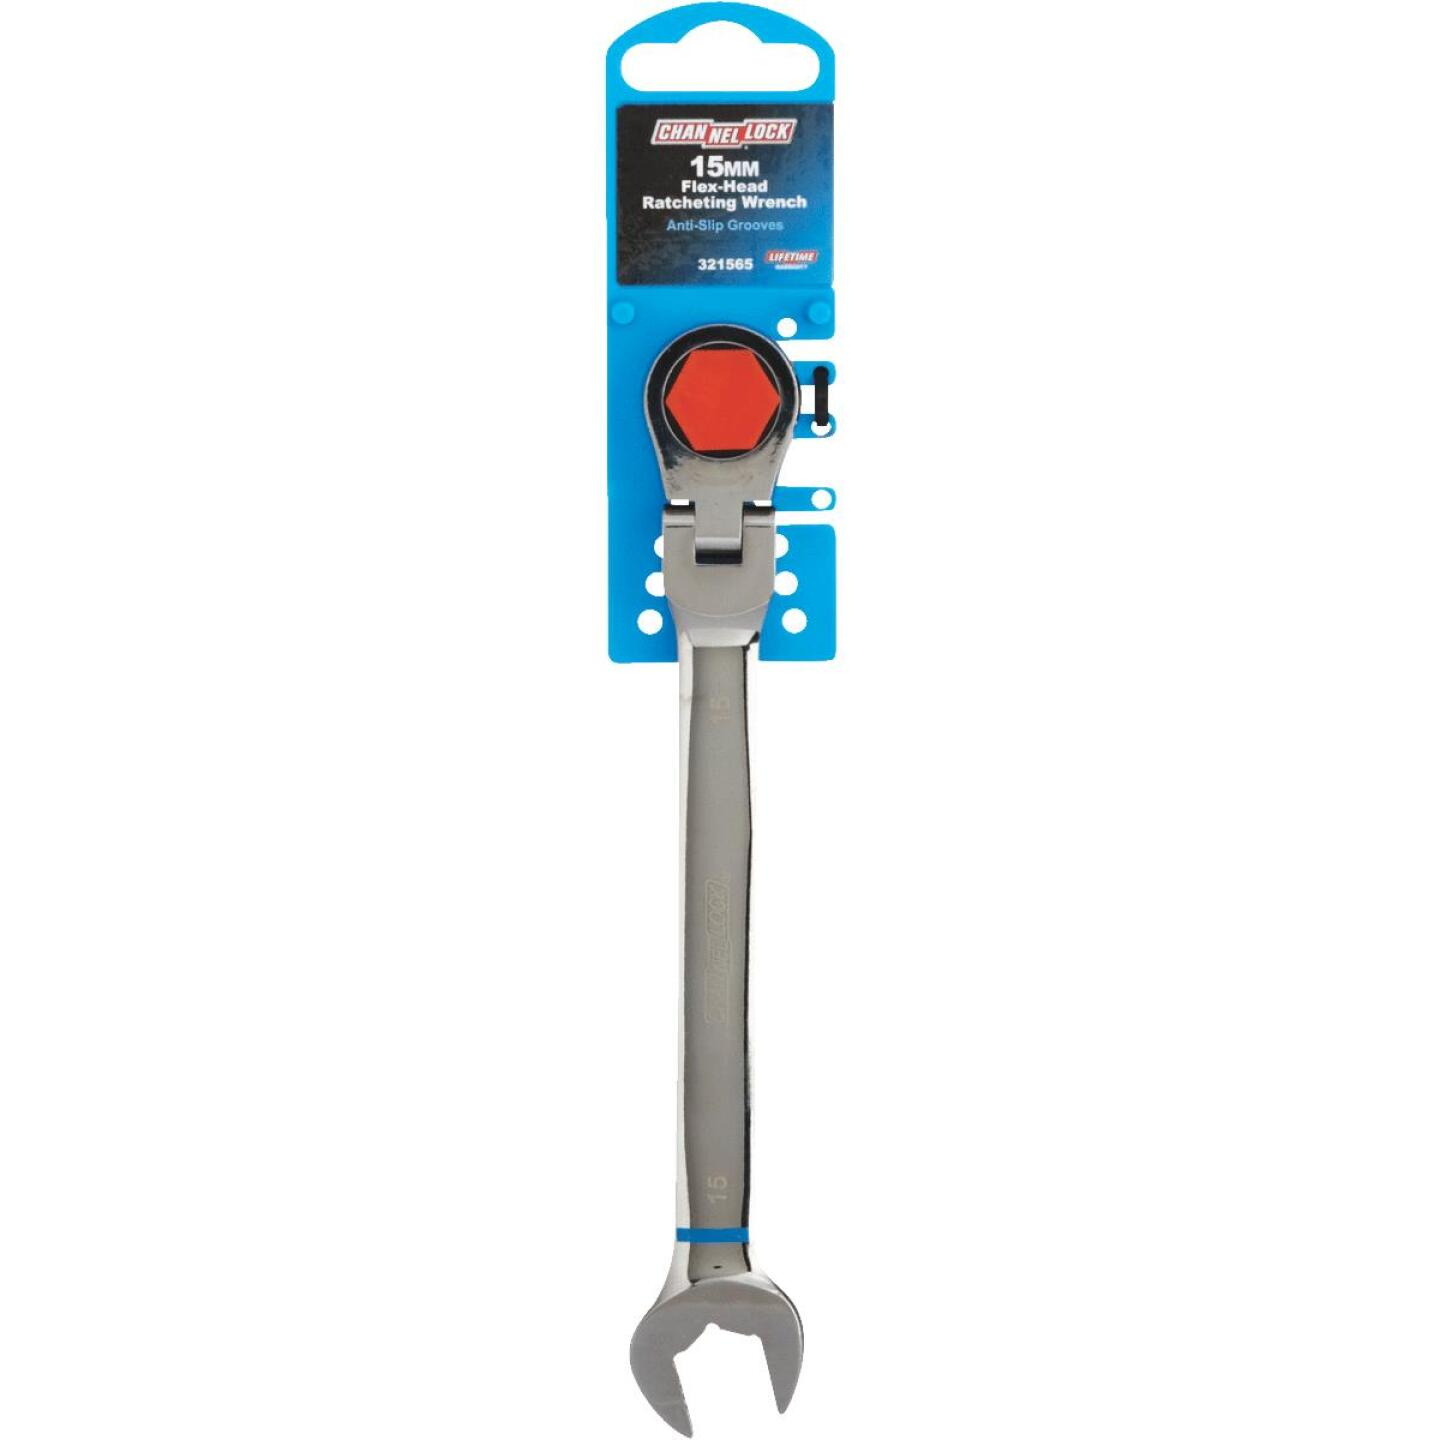 Channellock Metric 15 mm 12-Point Ratcheting Flex-Head Wrench Image 2